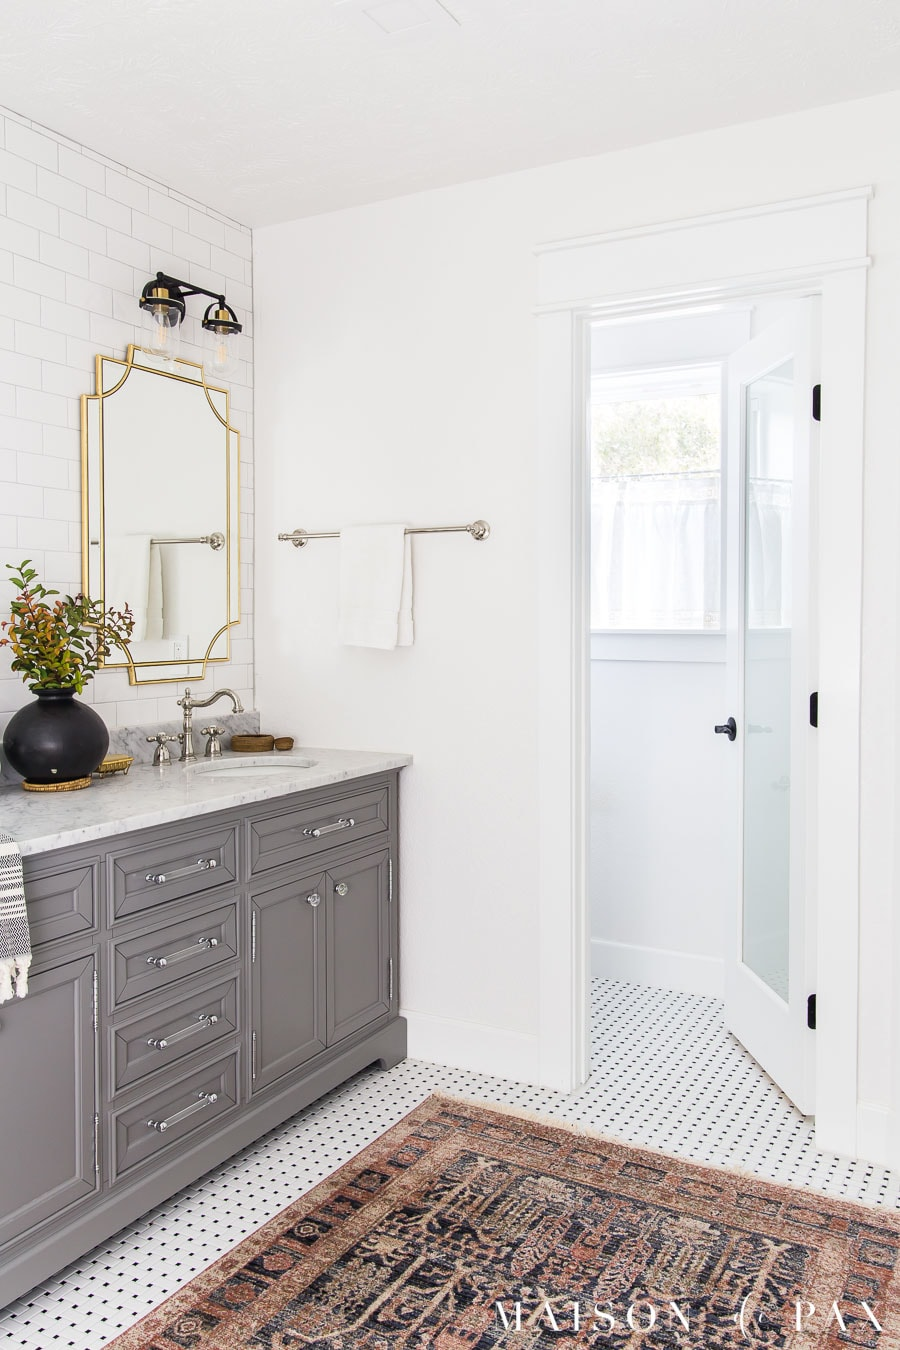 frosted glass door on water closet to allow in light